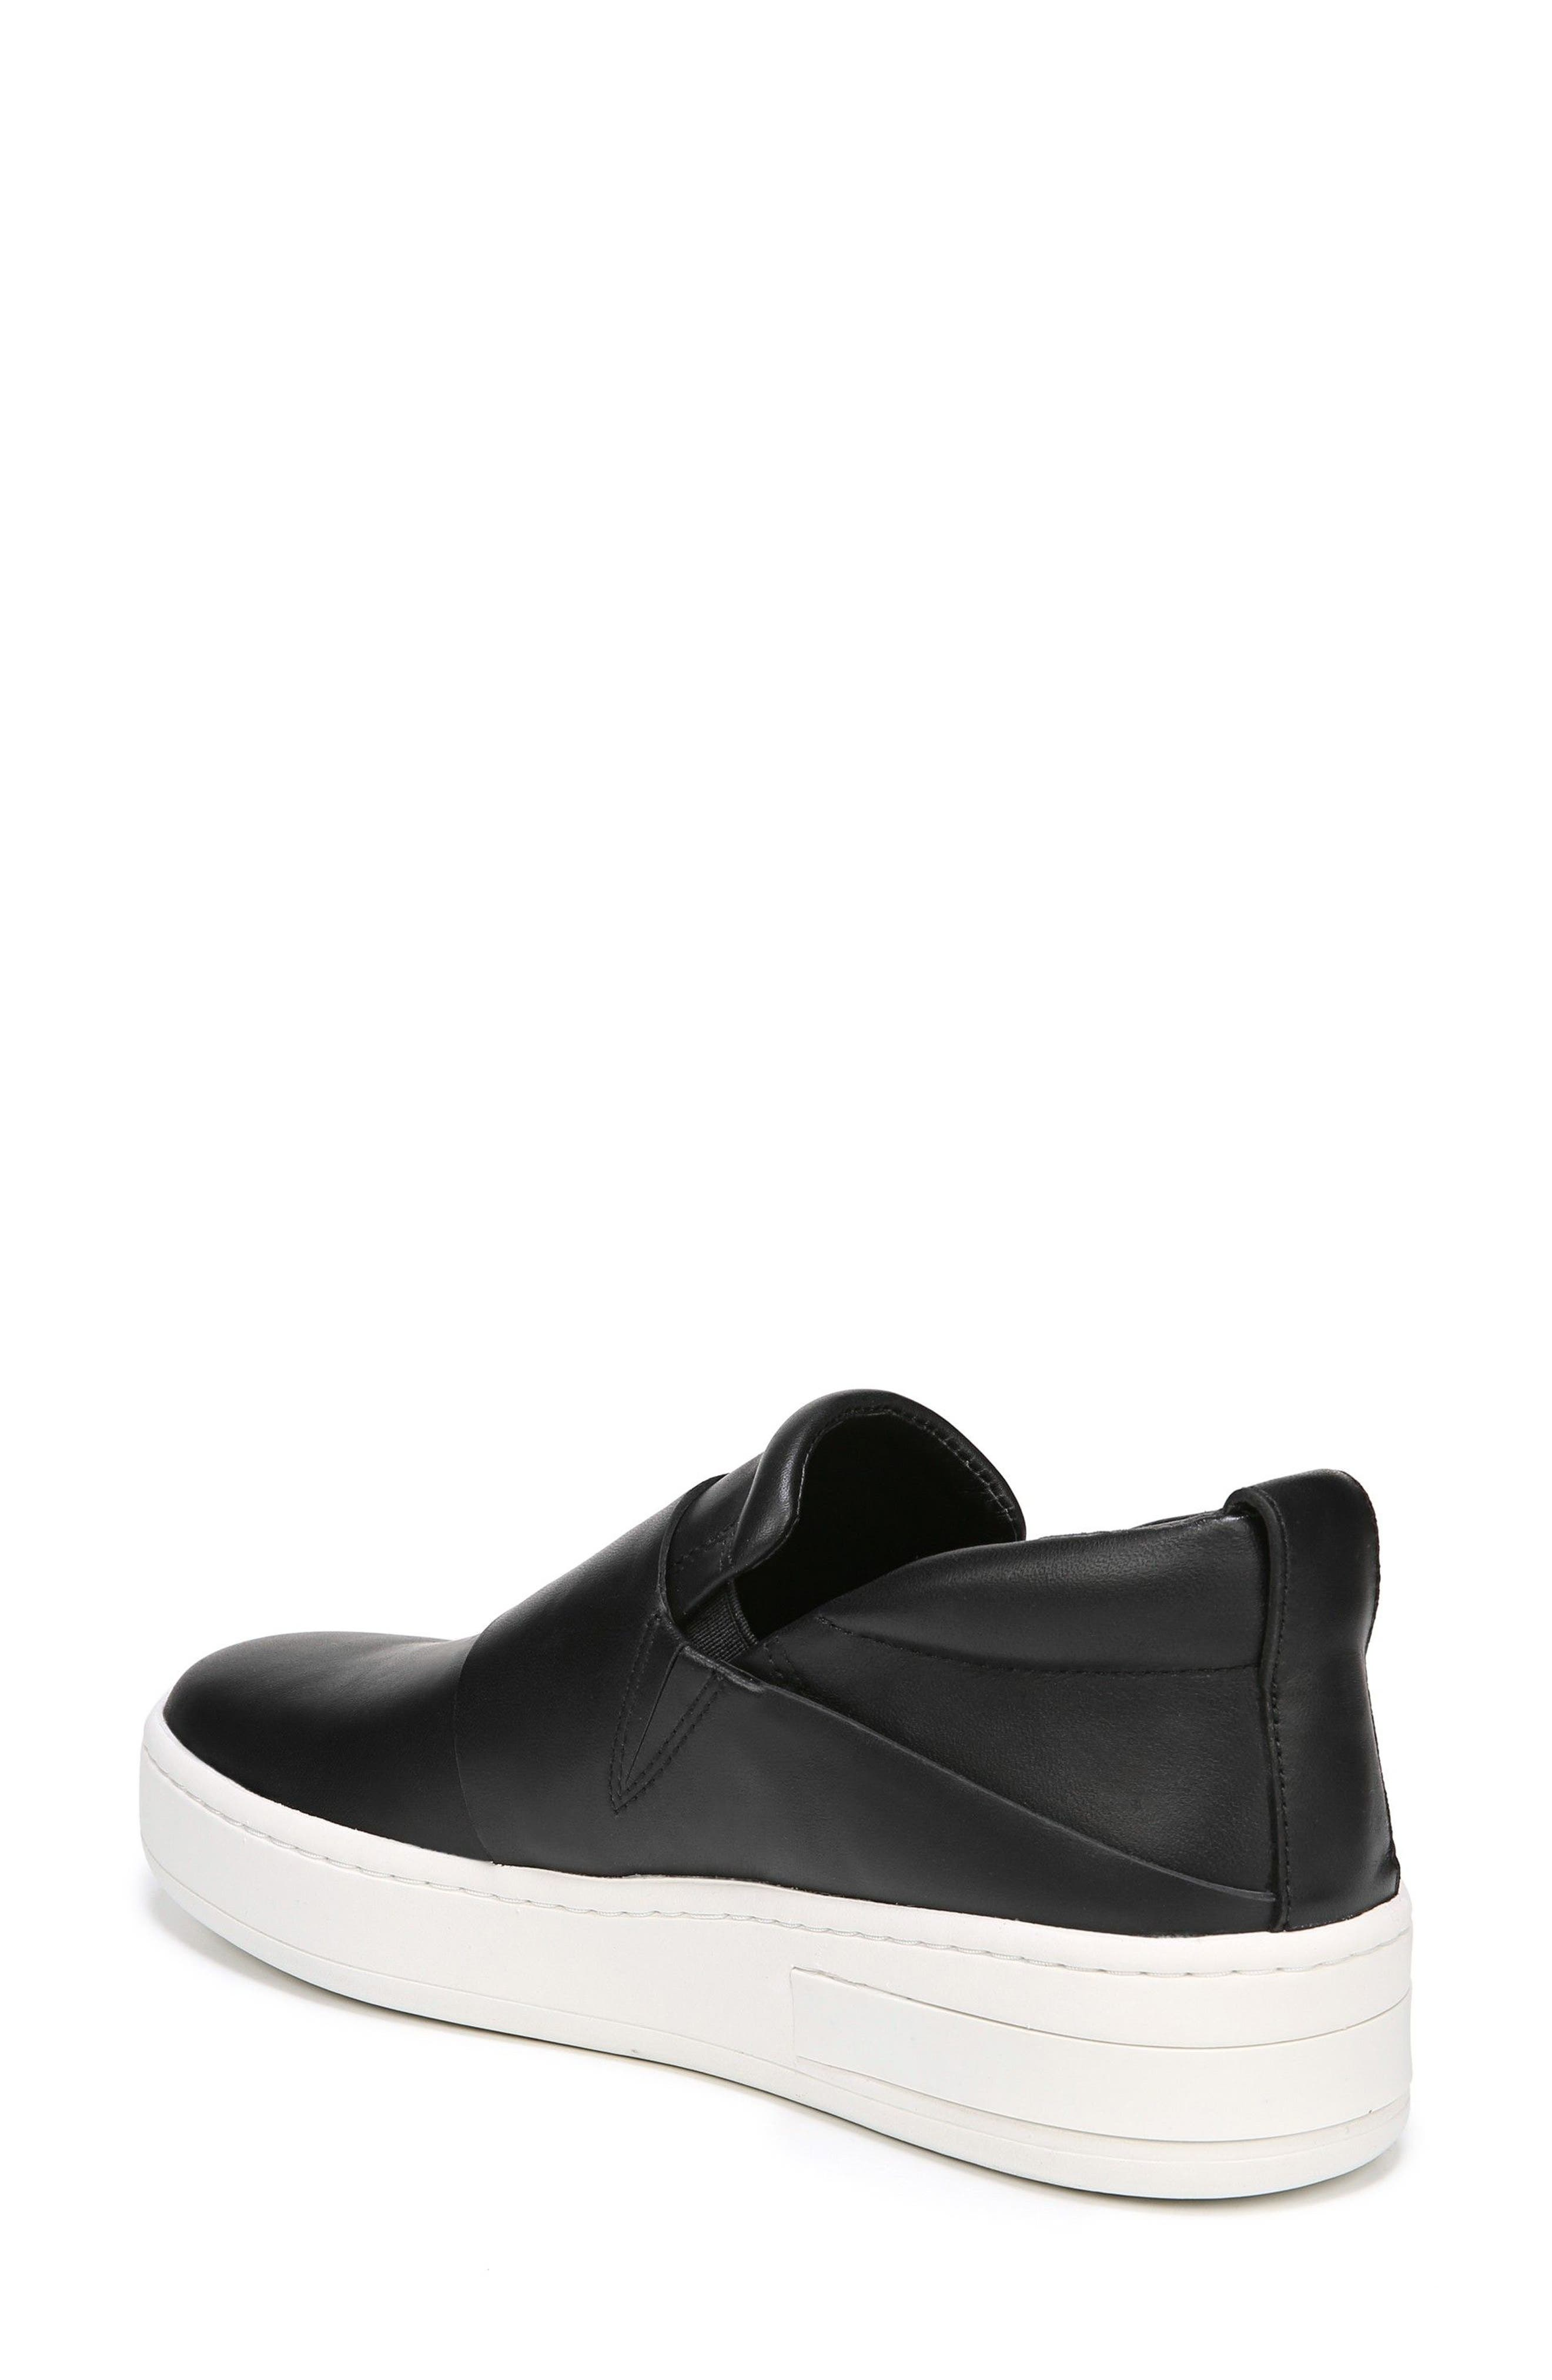 Ryder Slip-On Sneaker,                             Alternate thumbnail 2, color,                             BLACK LEATHER